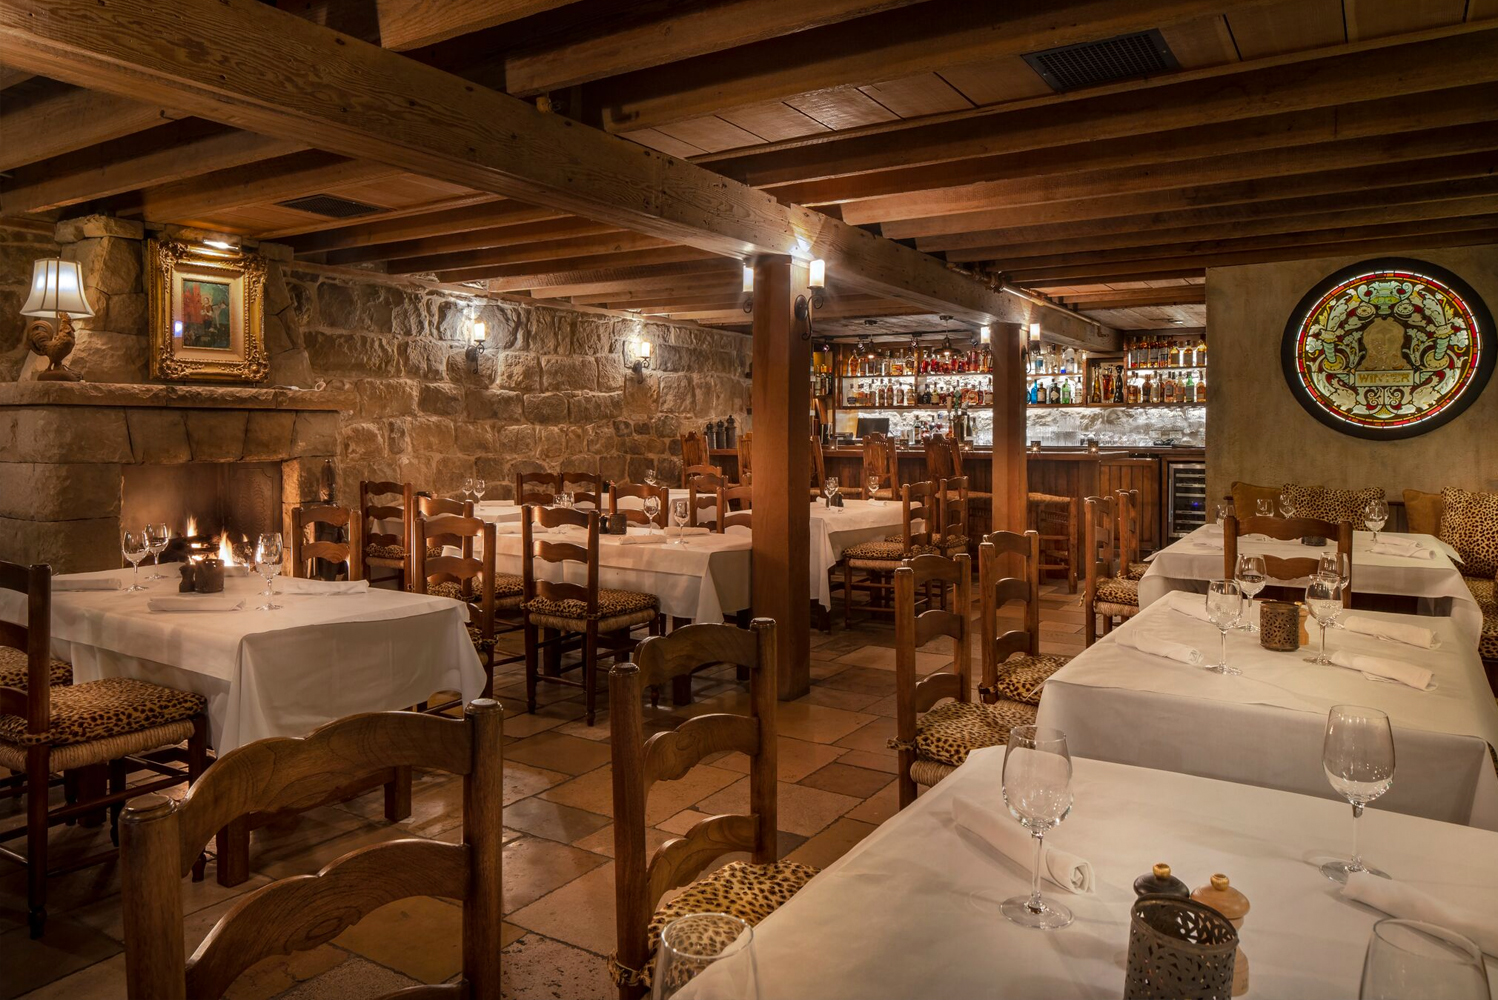 For dining, the property has The Stonehouse and Plow & Angel, which is located in a 19th century citrus packing house.